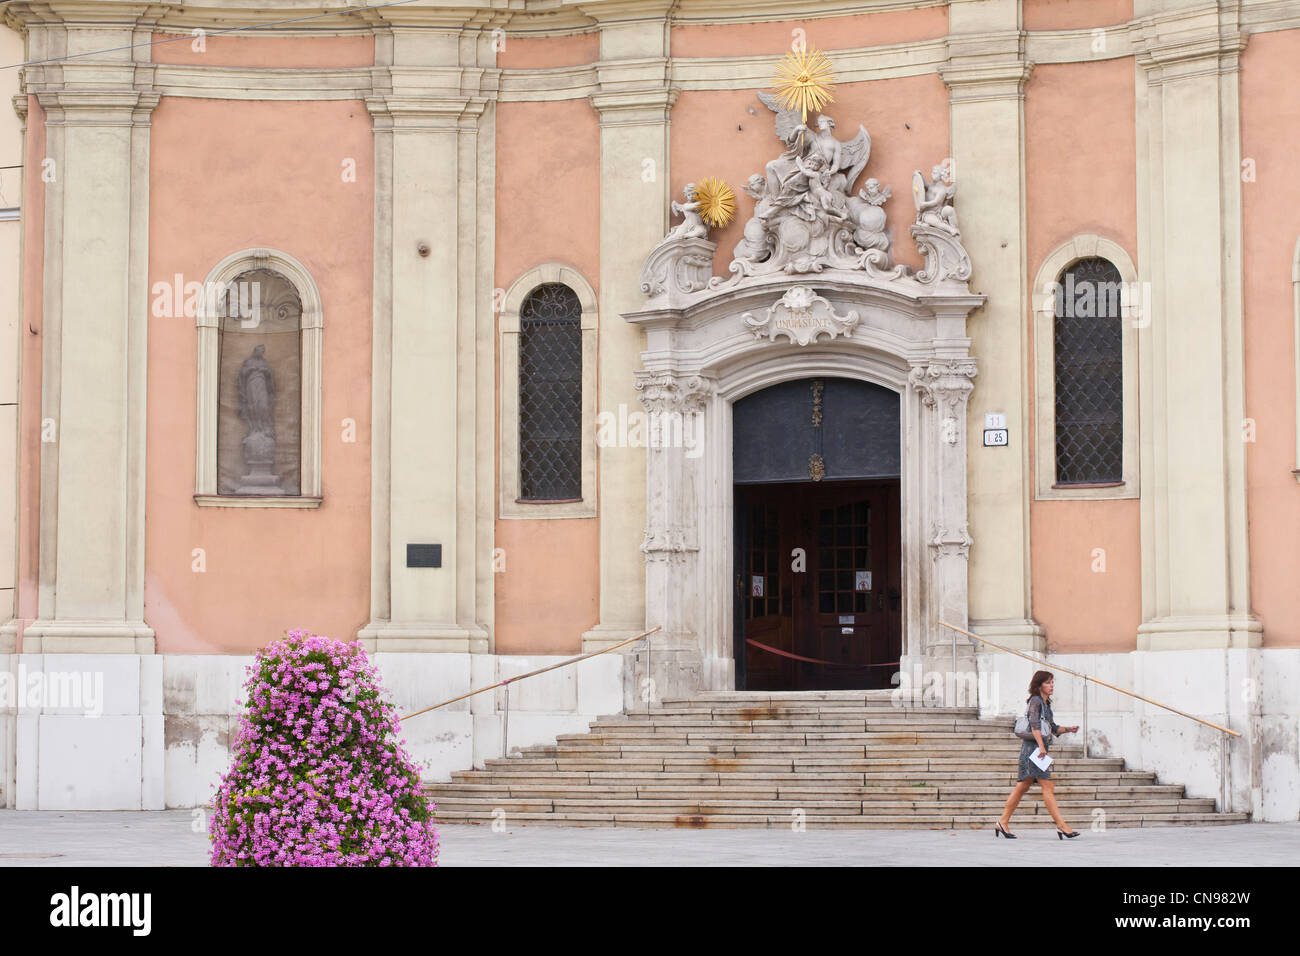 Slovakia, Bratislava, Trinity church, built in the beginning of the 18th century - Stock Image